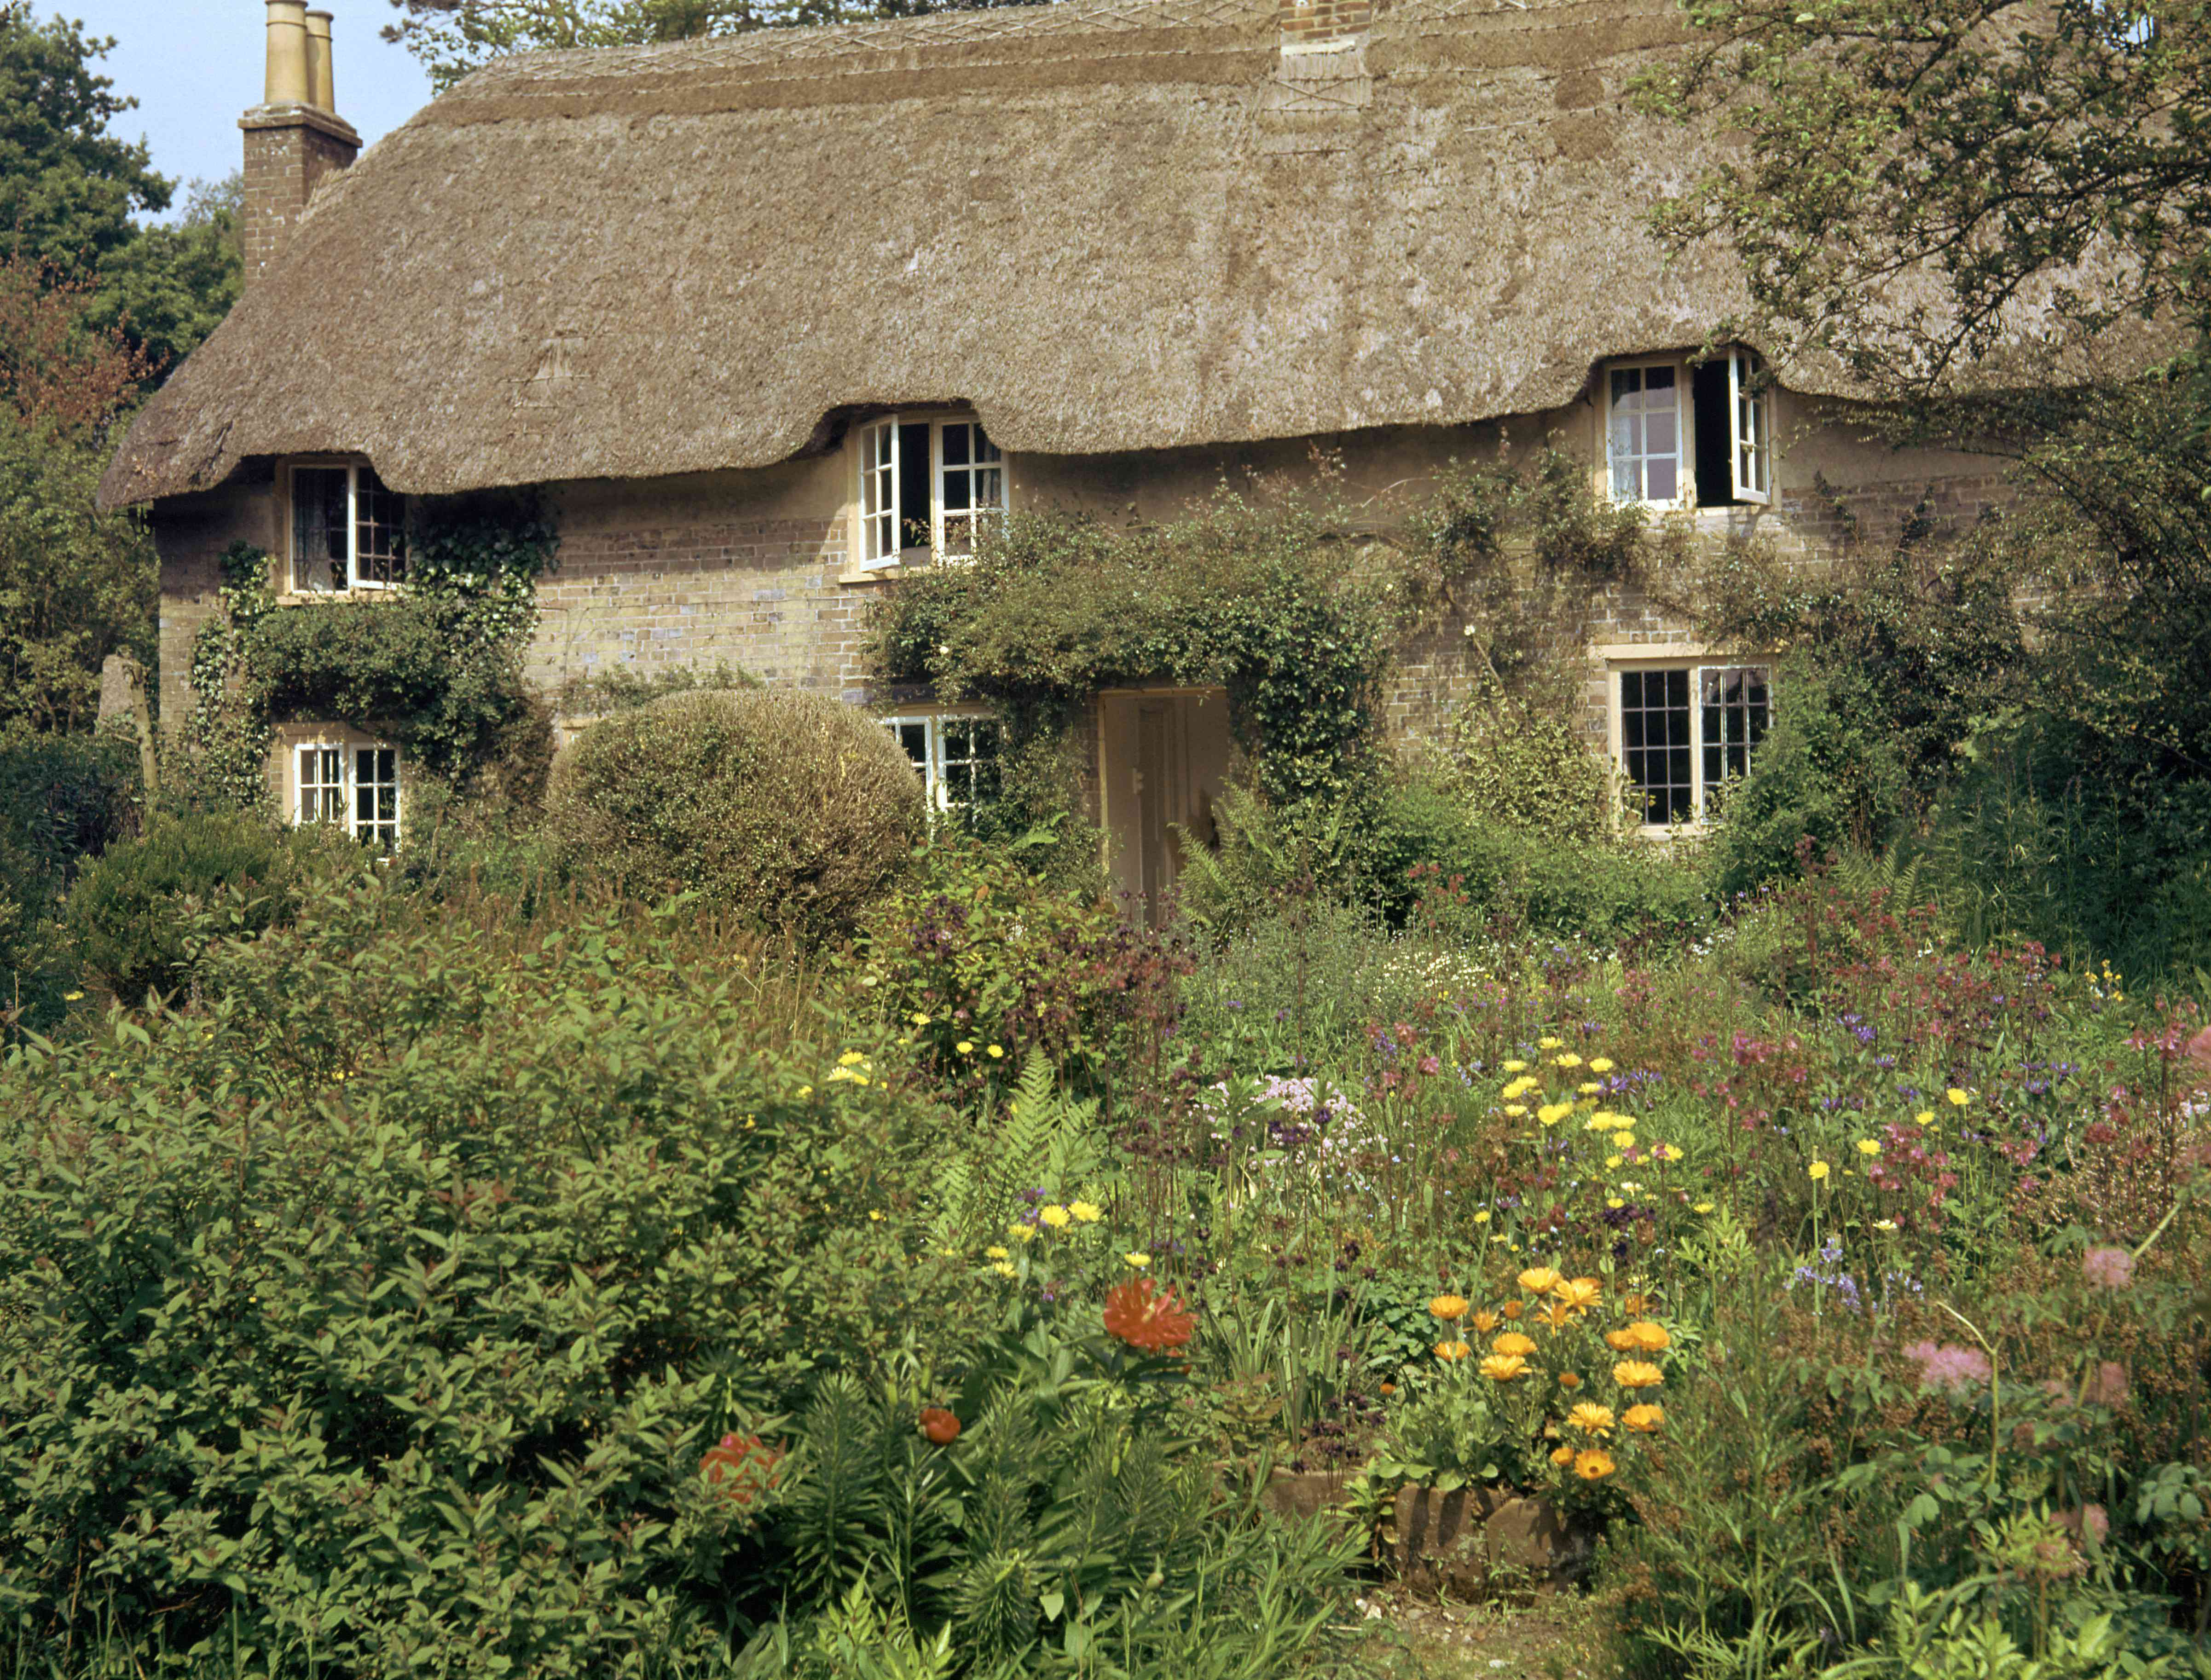 cob and thatch roof cottage surrounded by tall grasses and wildflowers